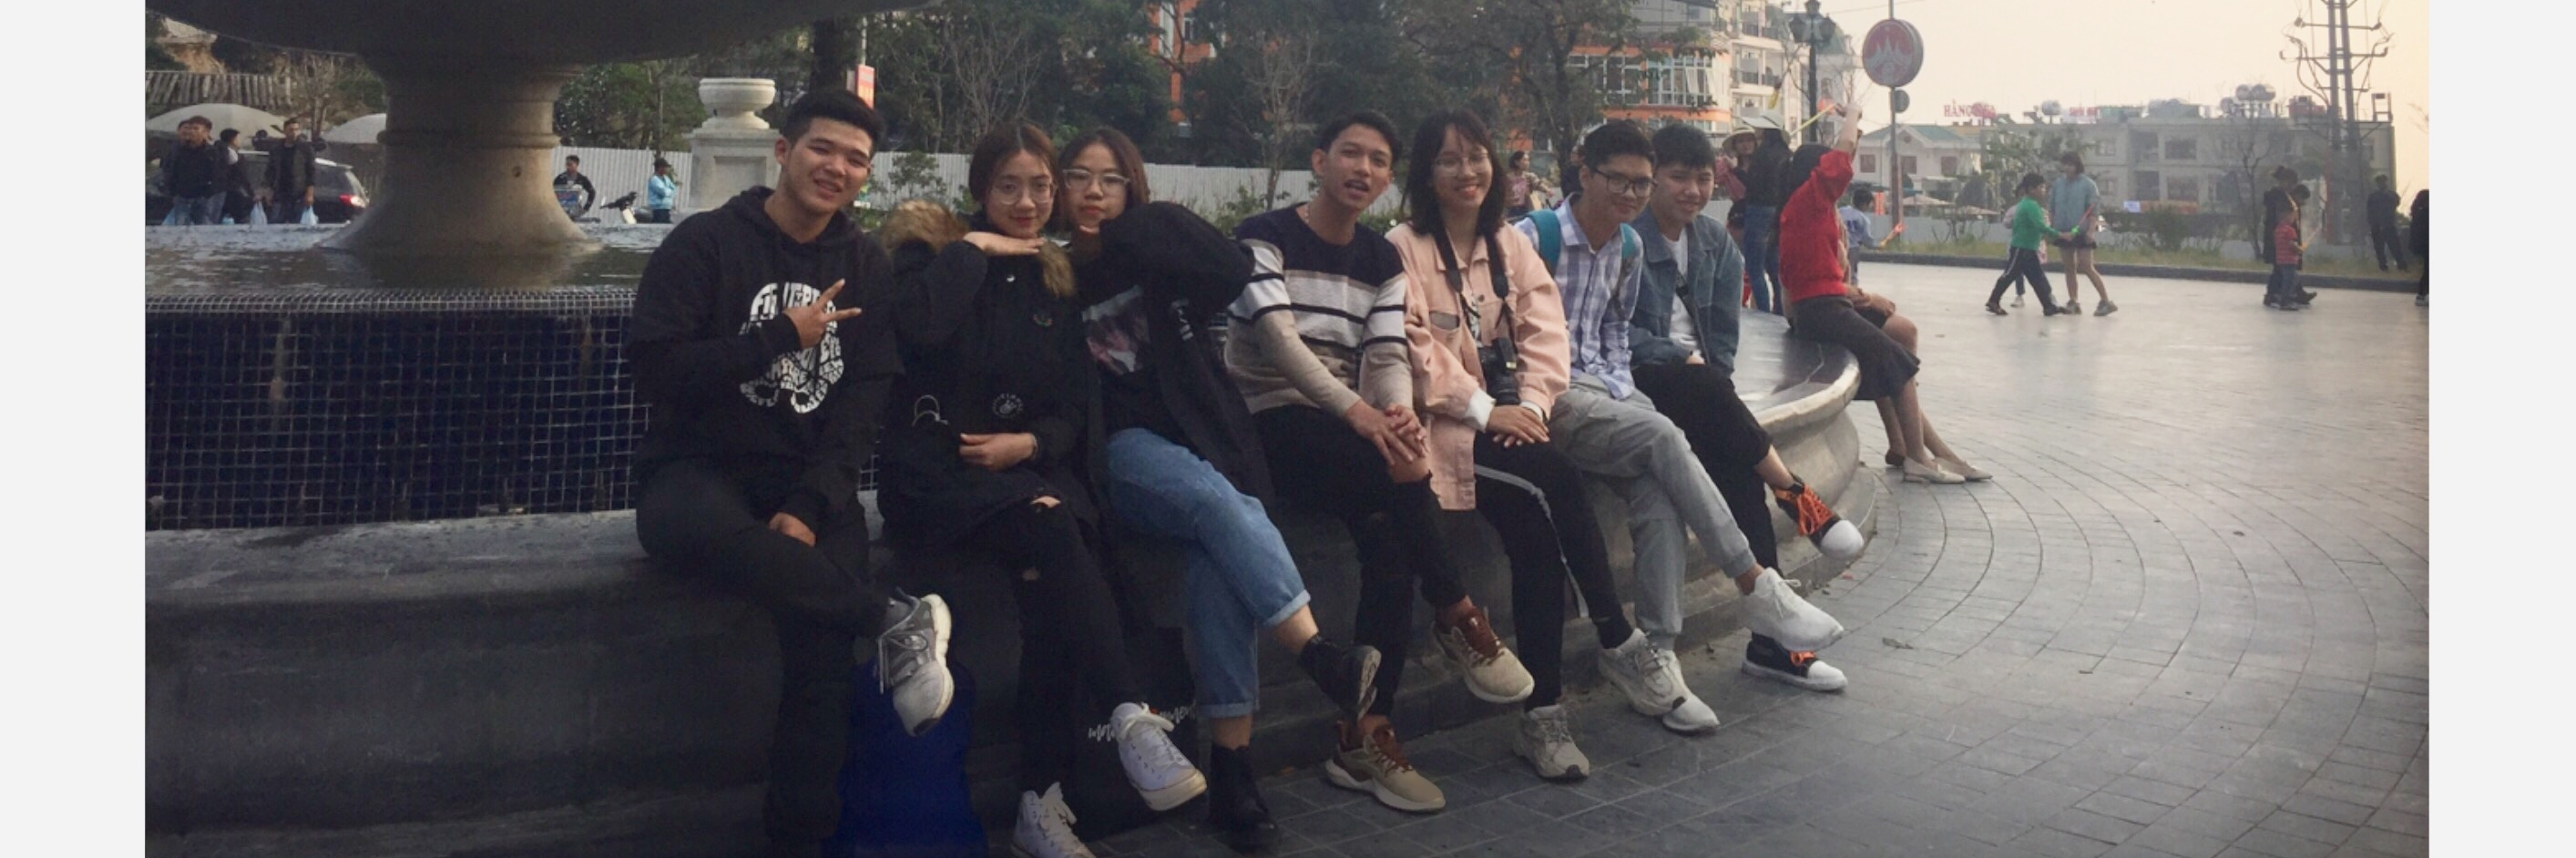 https://gody.vn/blog/luongngoc1695620/post/camping-in-tam-dao-2n1d-with-team-7105